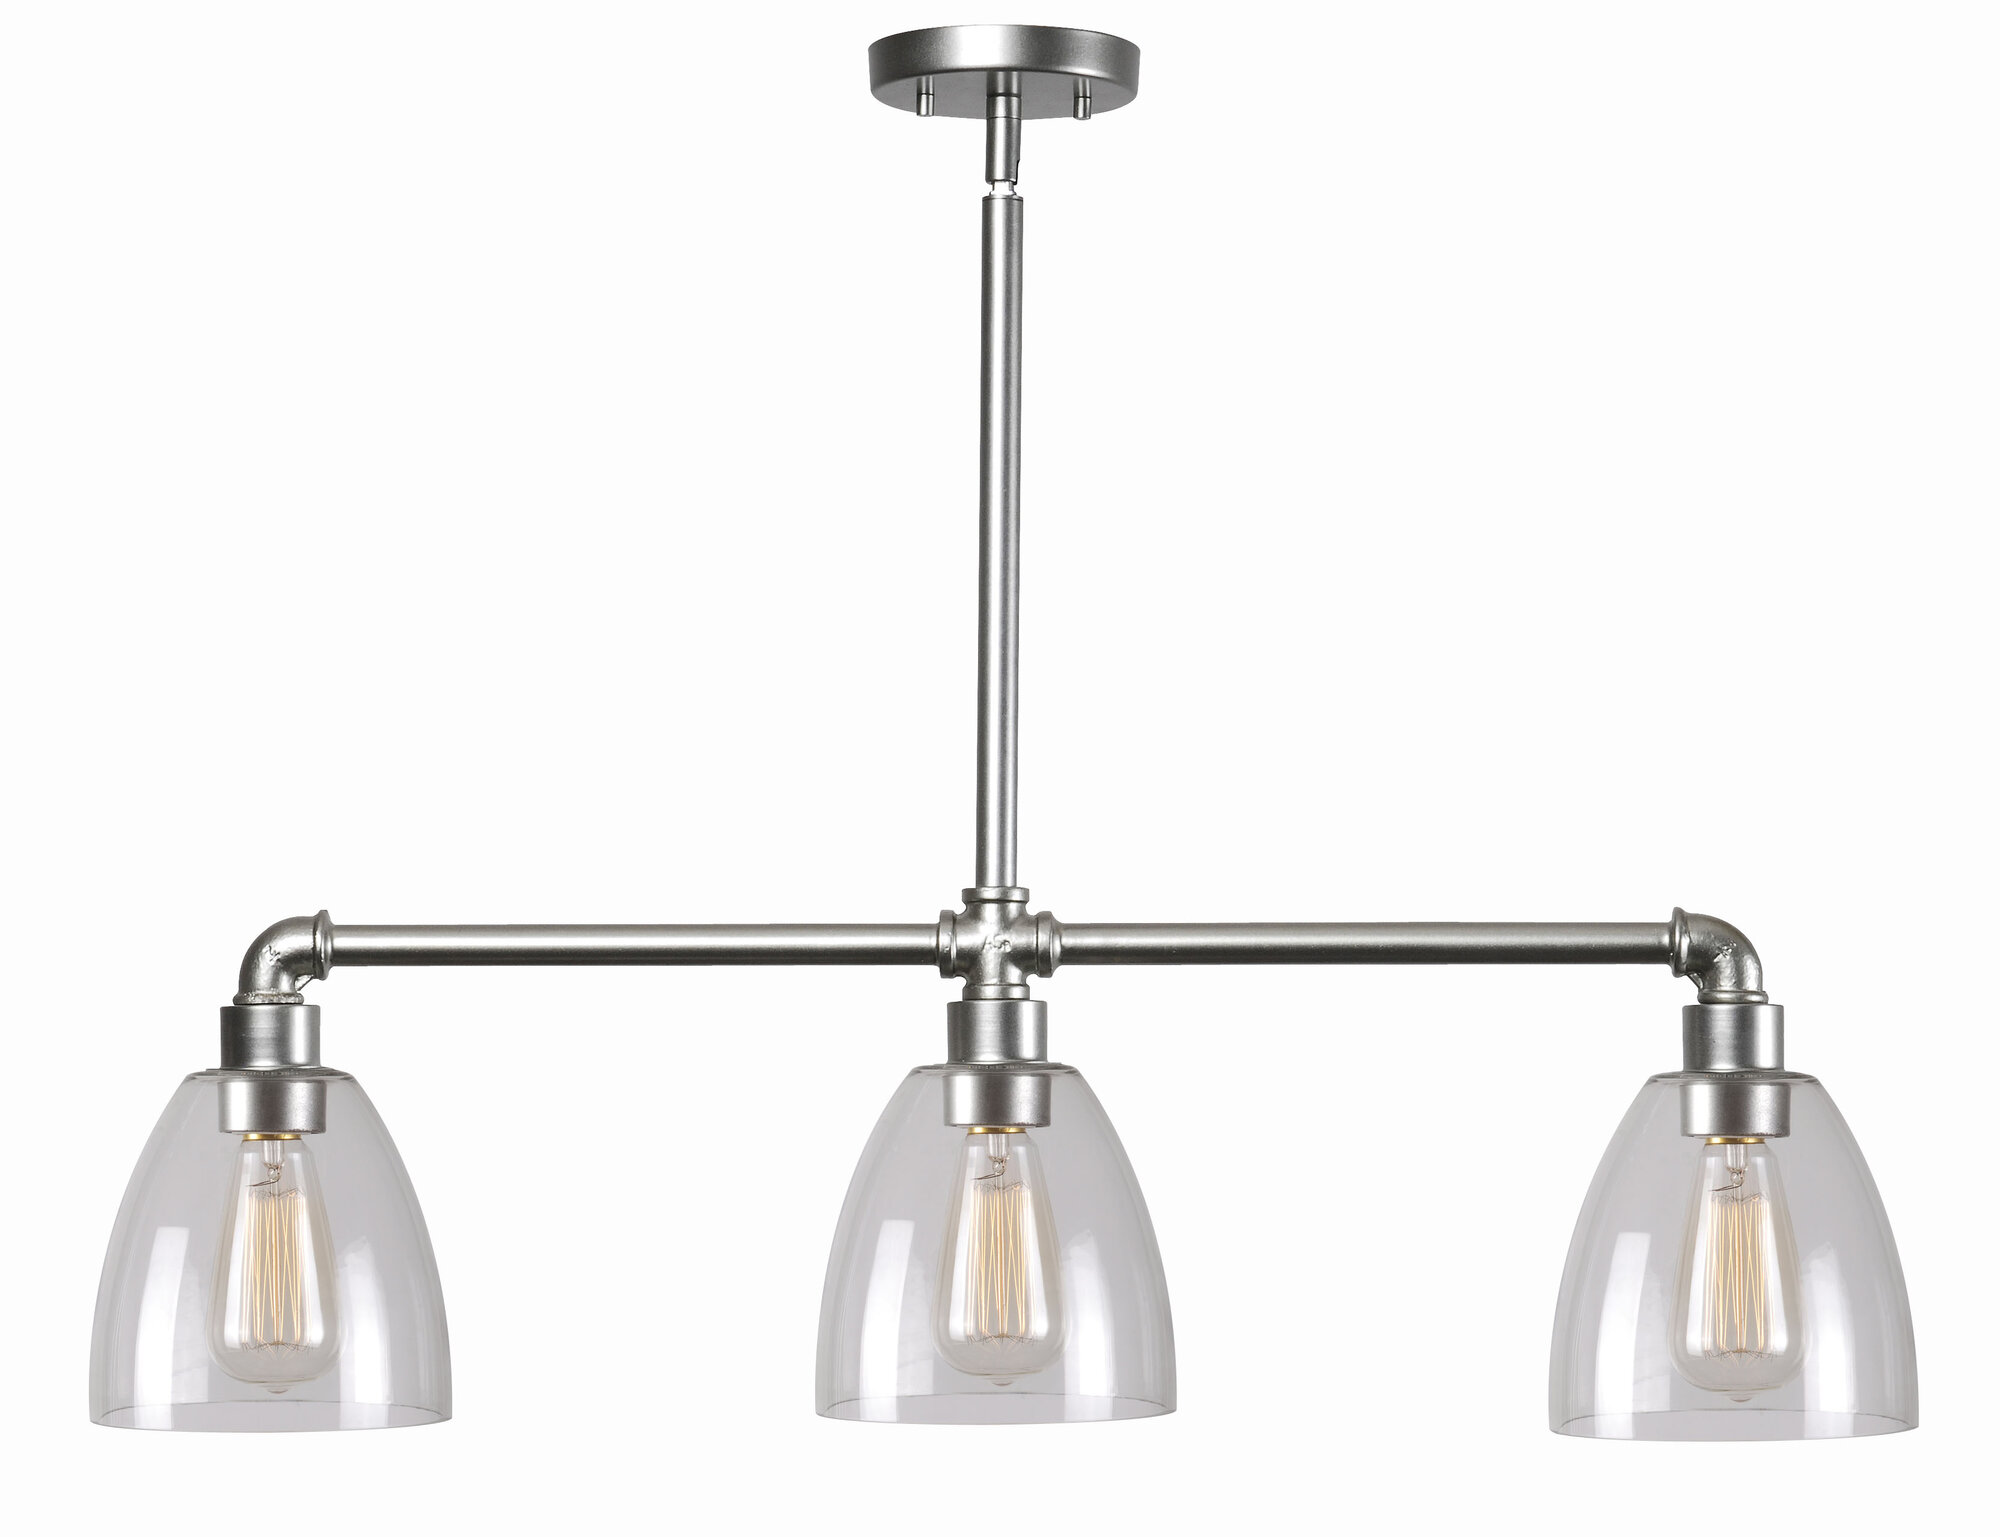 Wildon Home ® Industrial Fitter 3 Light Kitchen Island Pendant